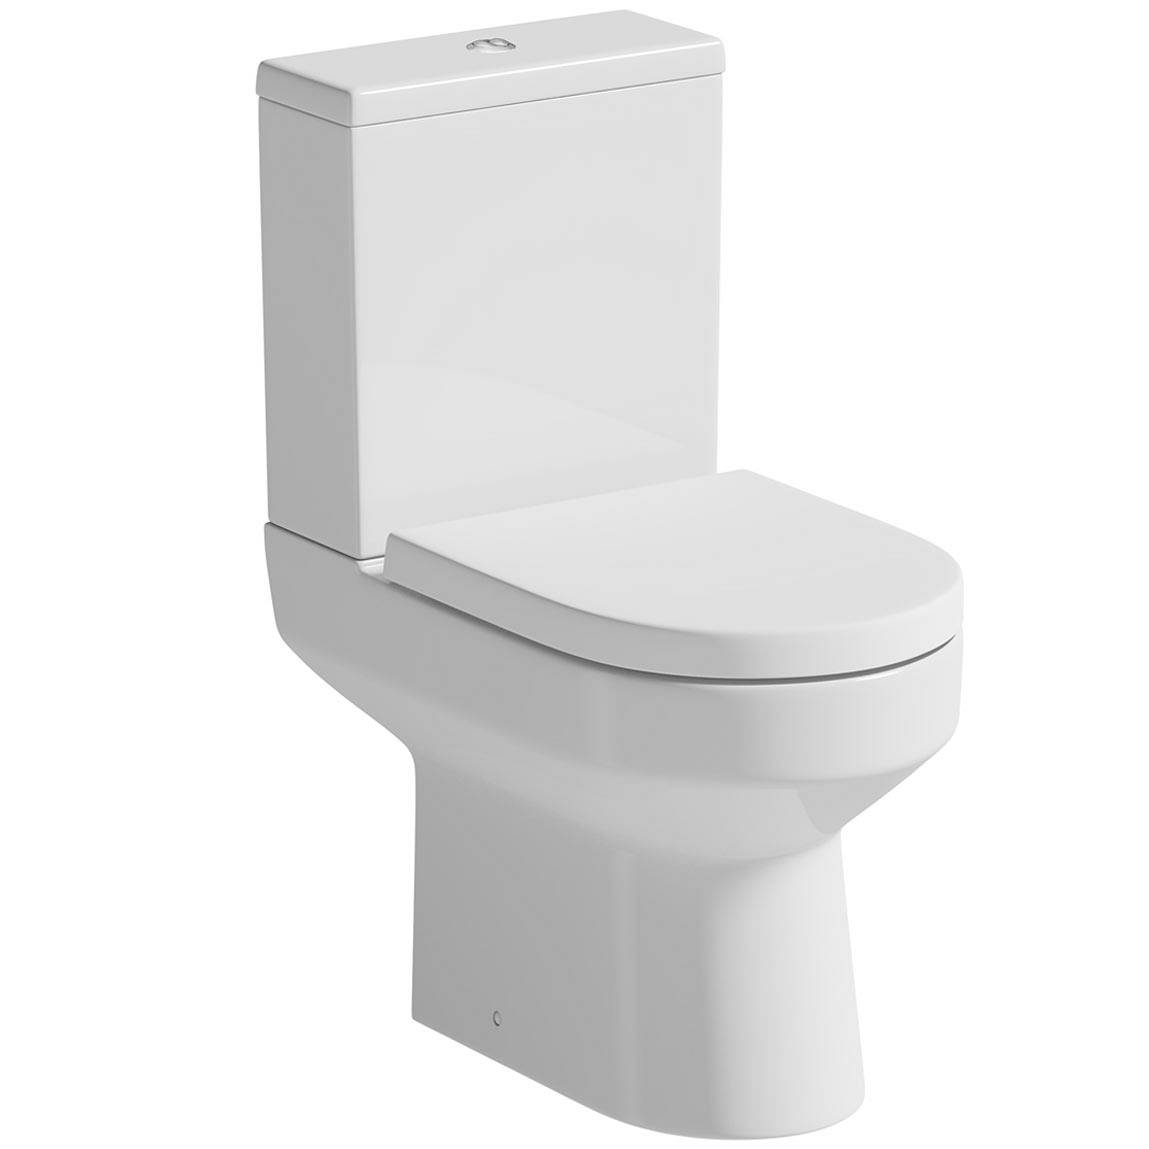 Image of Oakley Close Coupled Toilet inc. Luxury Soft Close Seat